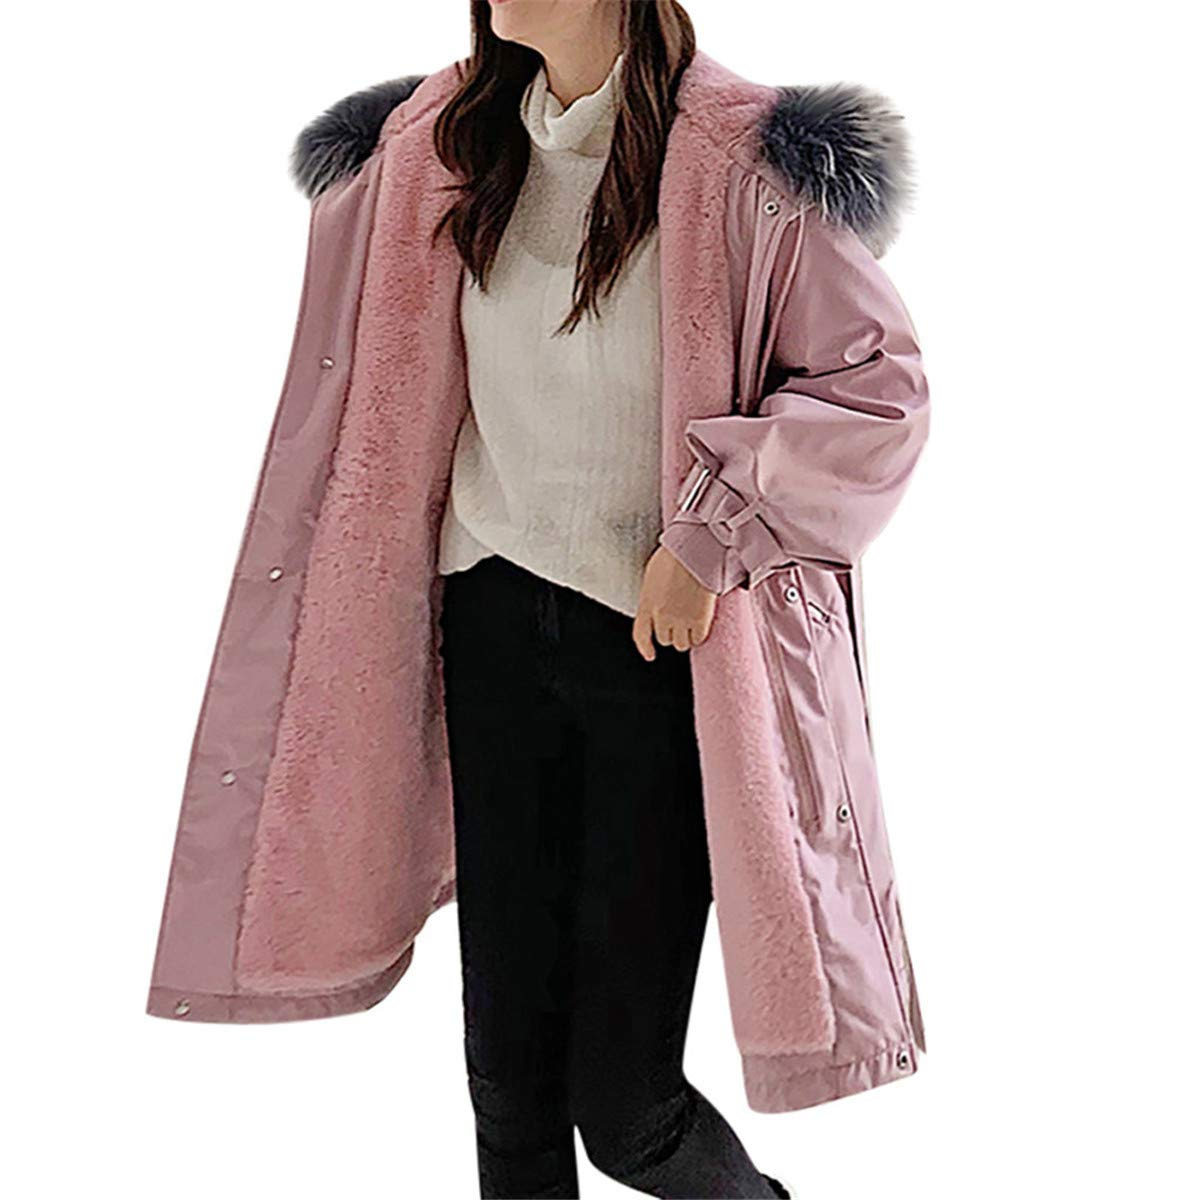 Thenxin Women's Winter Parka Puffer Hooded Jacket Solid Color Thick Lined Outwear with Drawstring(Pink,L) by Thenxin